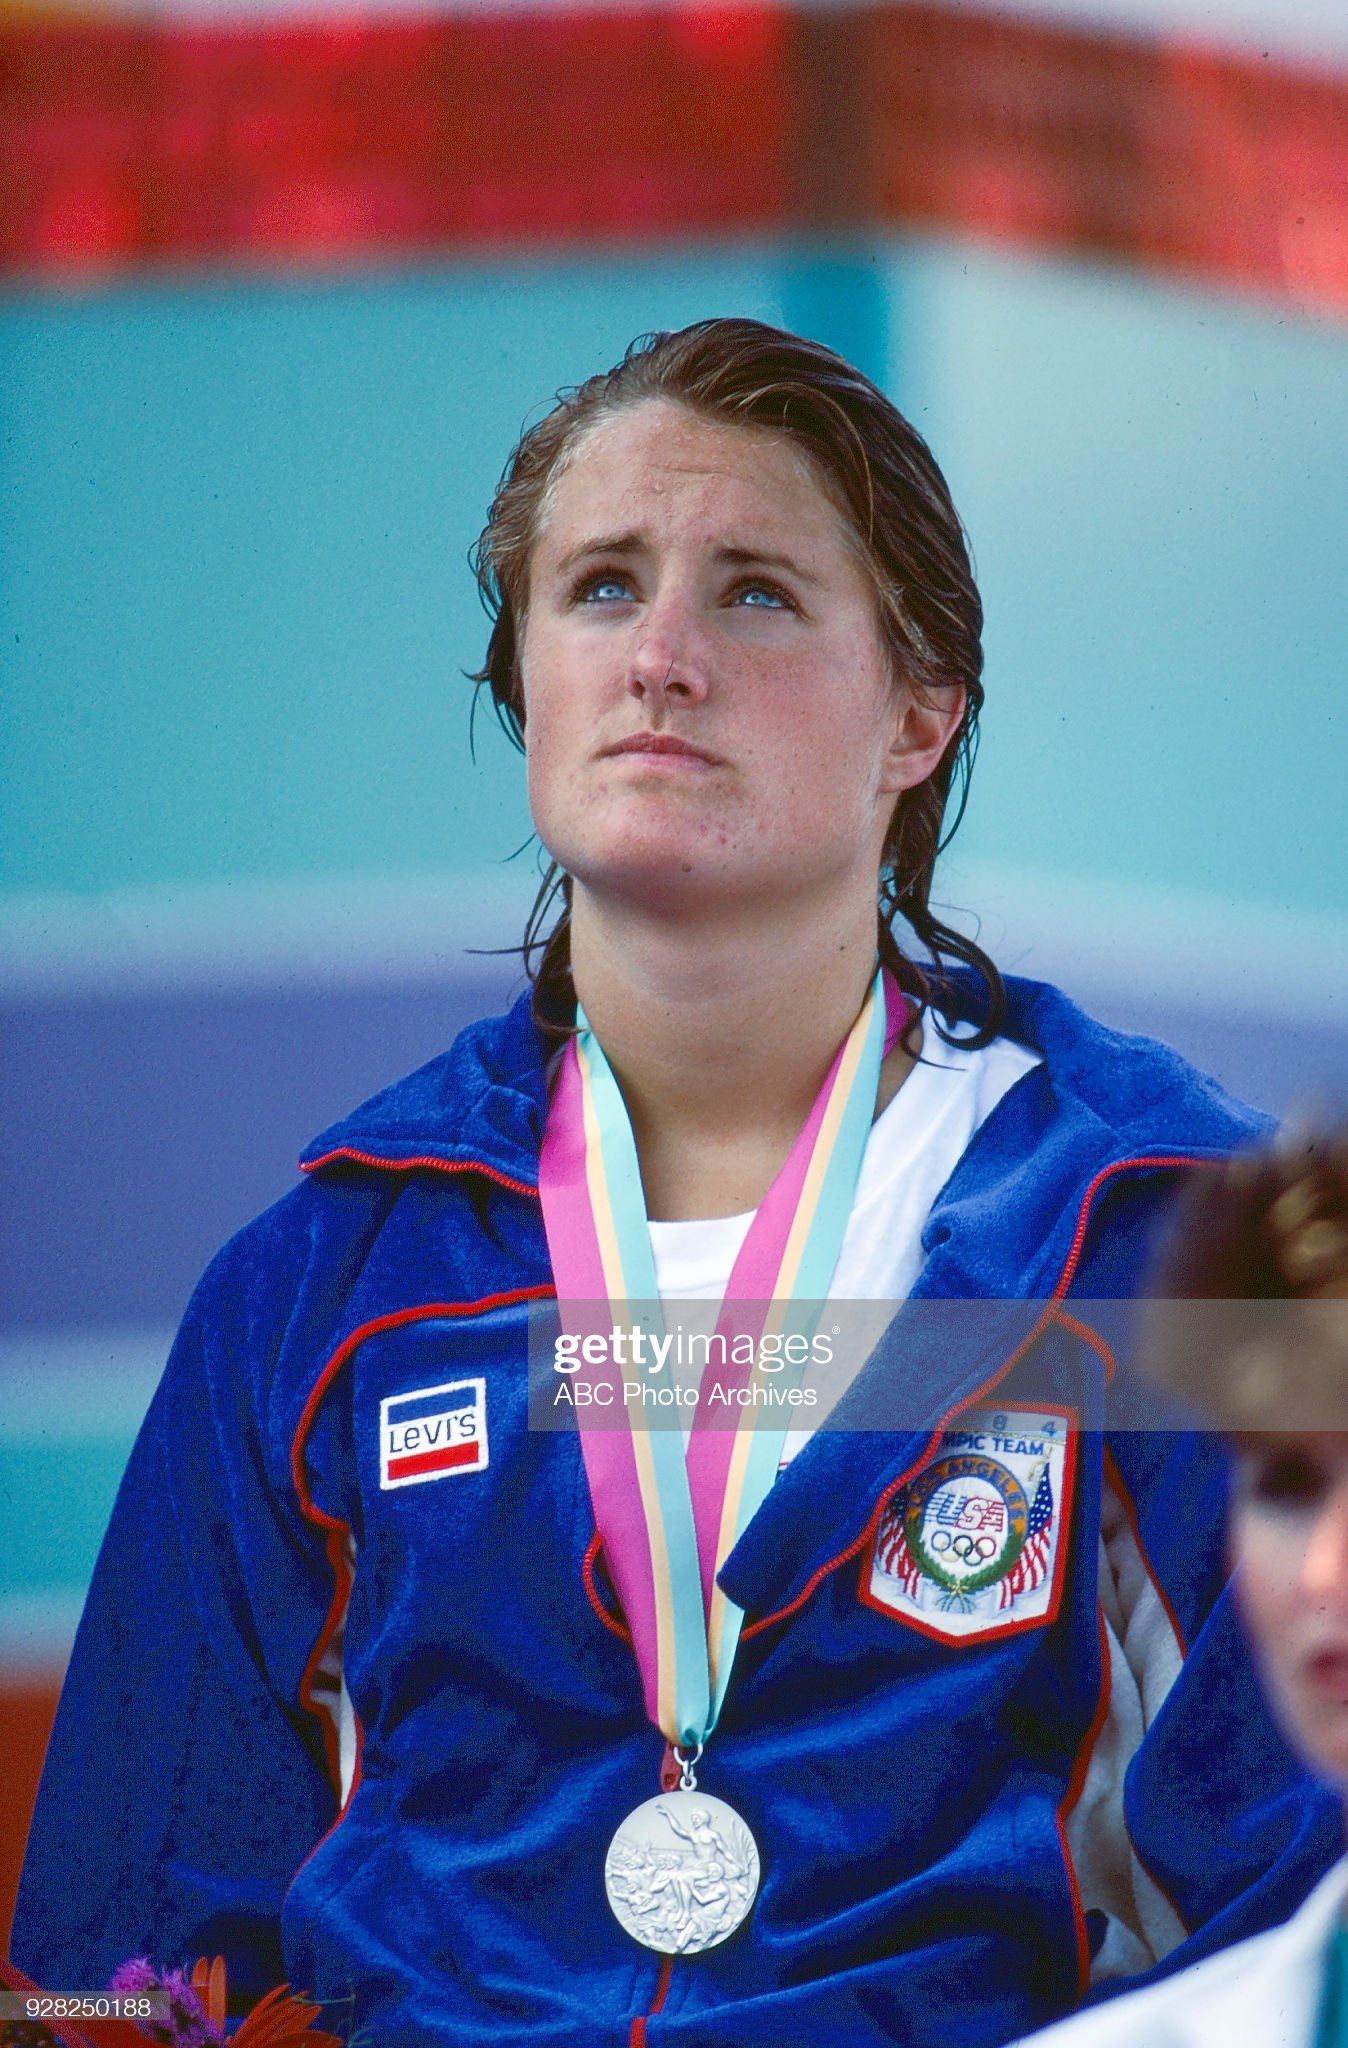 Women's Swimming 200 Metre Breaststroke Medal Ceremony At The 1984 Summer Olympics : Fotografía de noticias